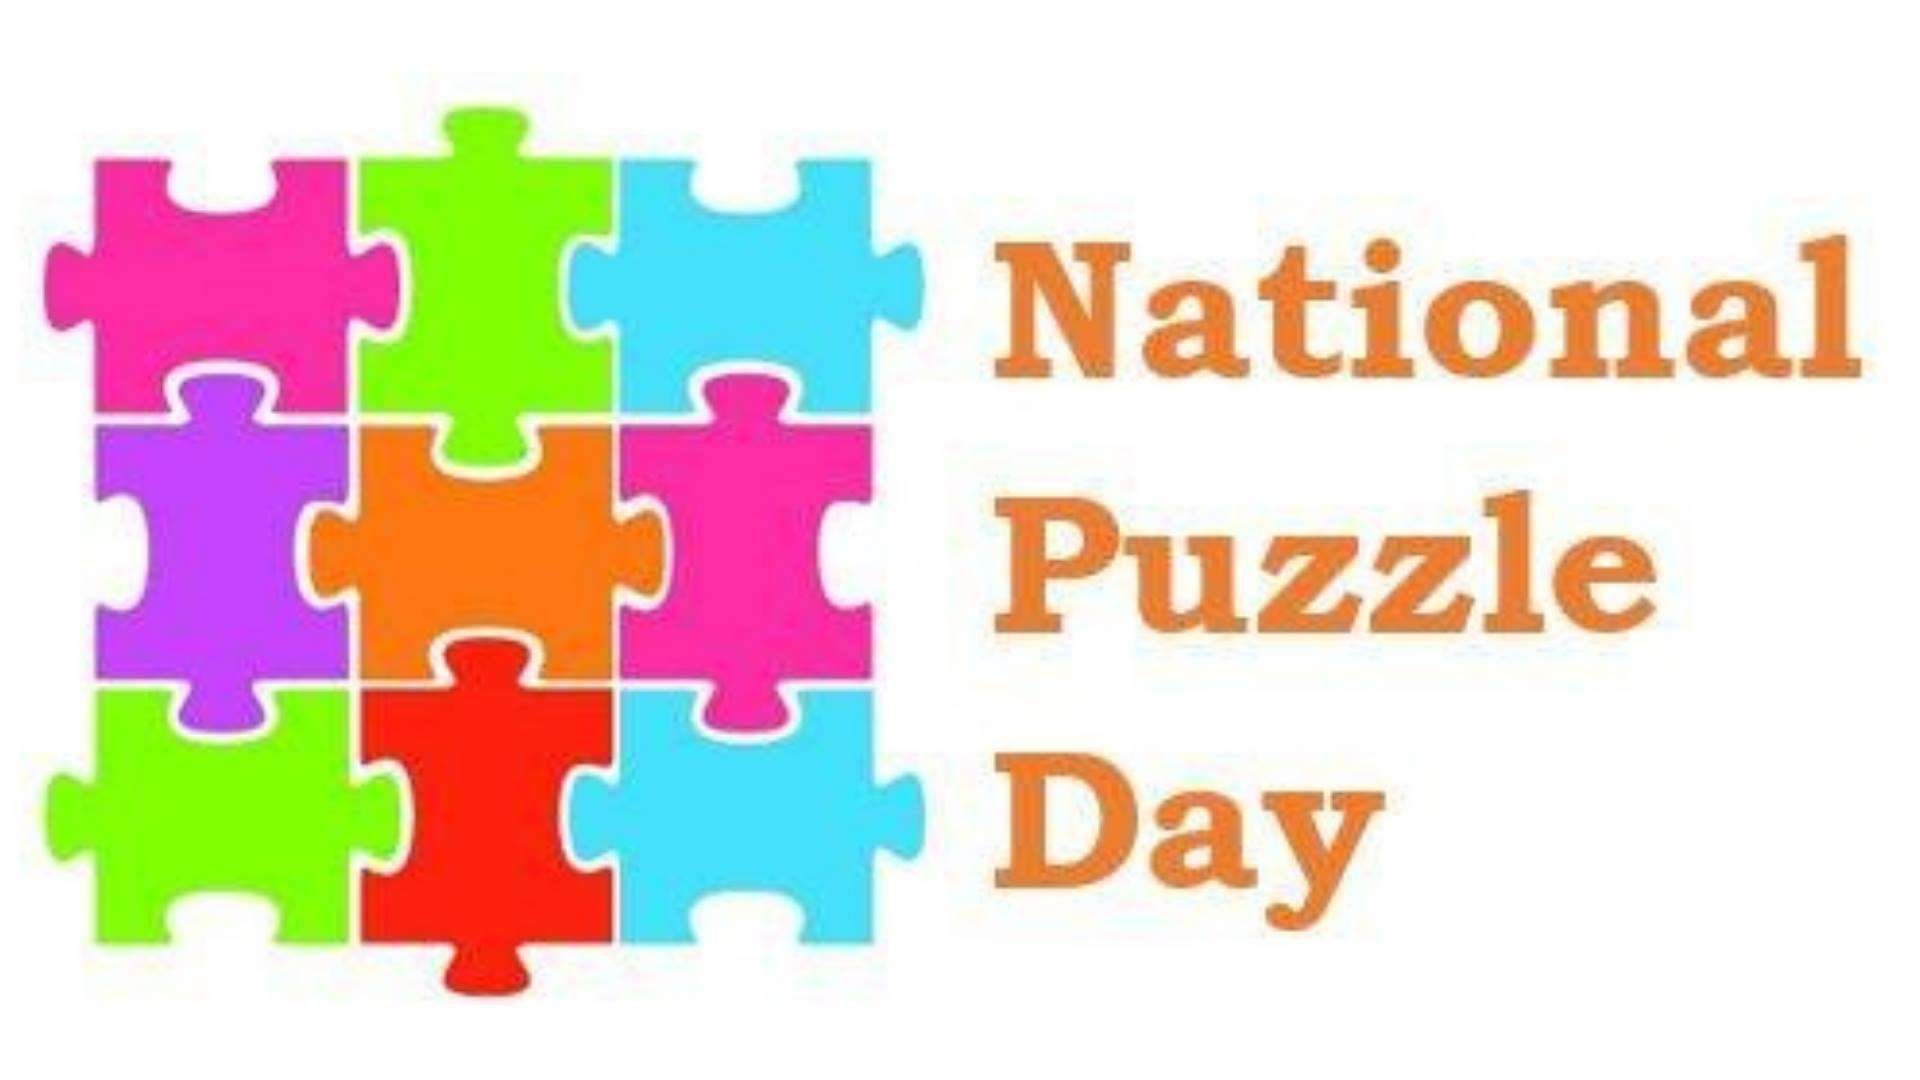 National Puzzle Day Wishes Beautiful Image